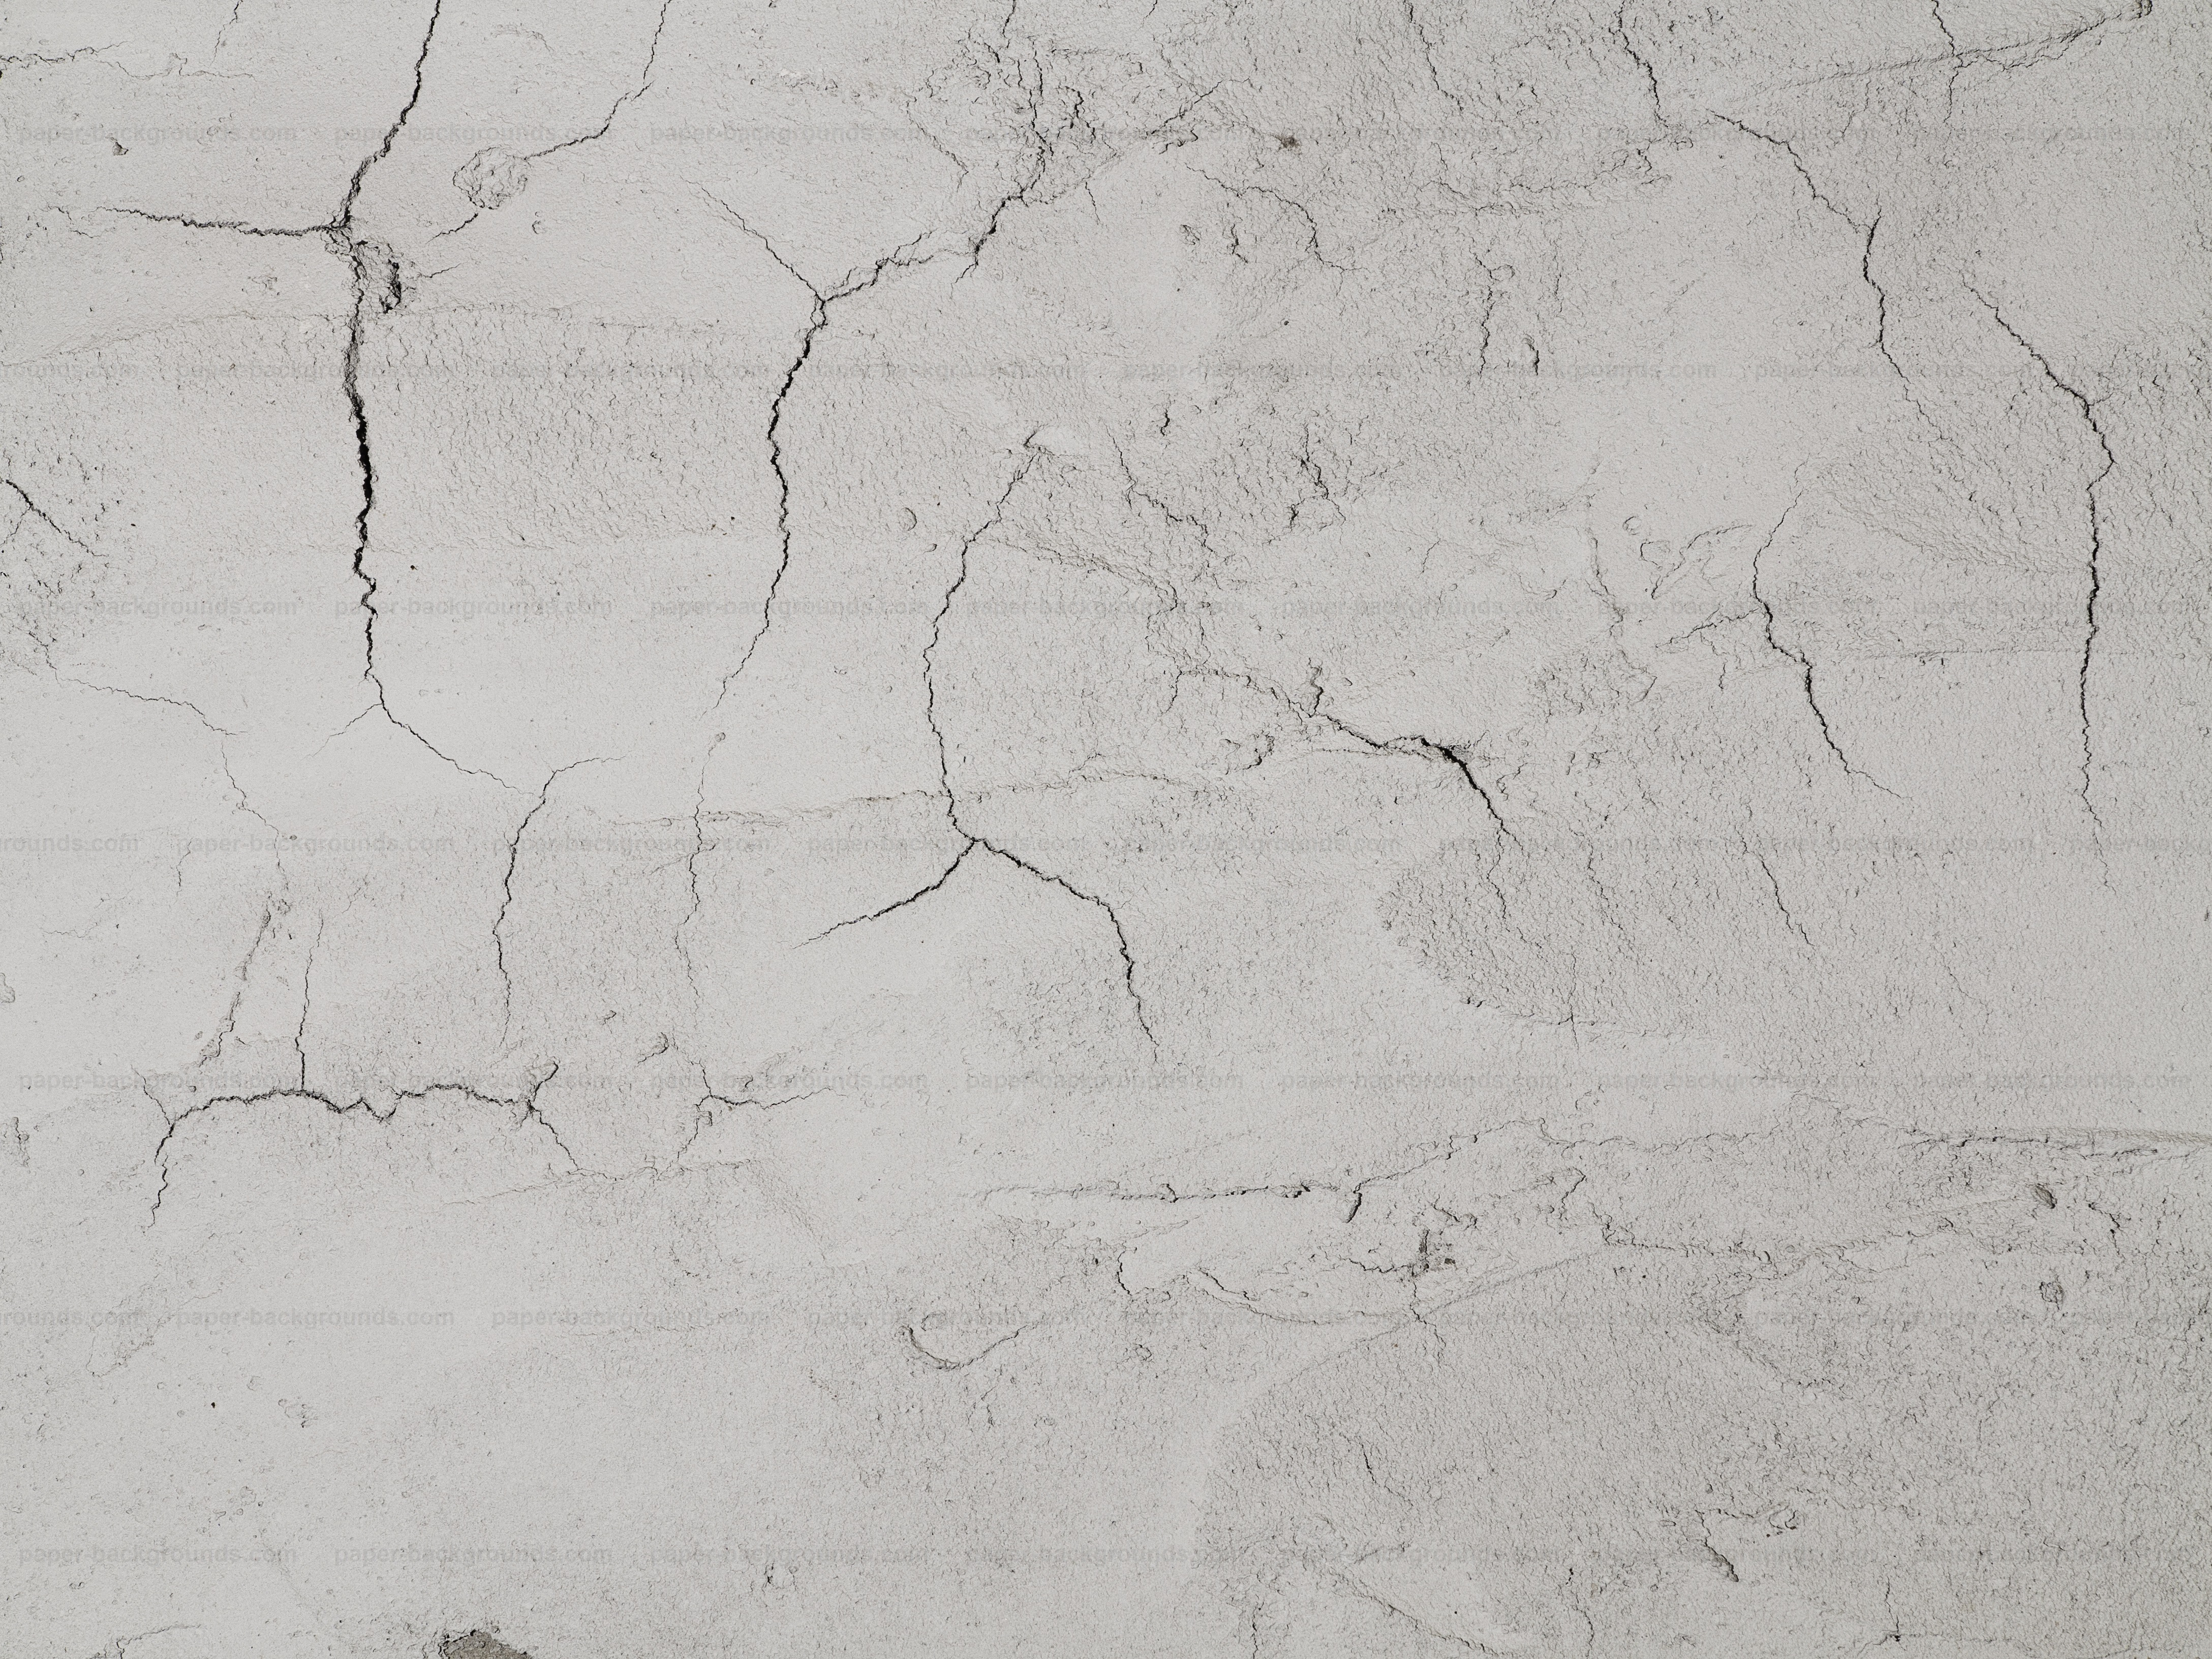 Cracked Wall Texture | www.imgkid.com - The Image Kid Has It!